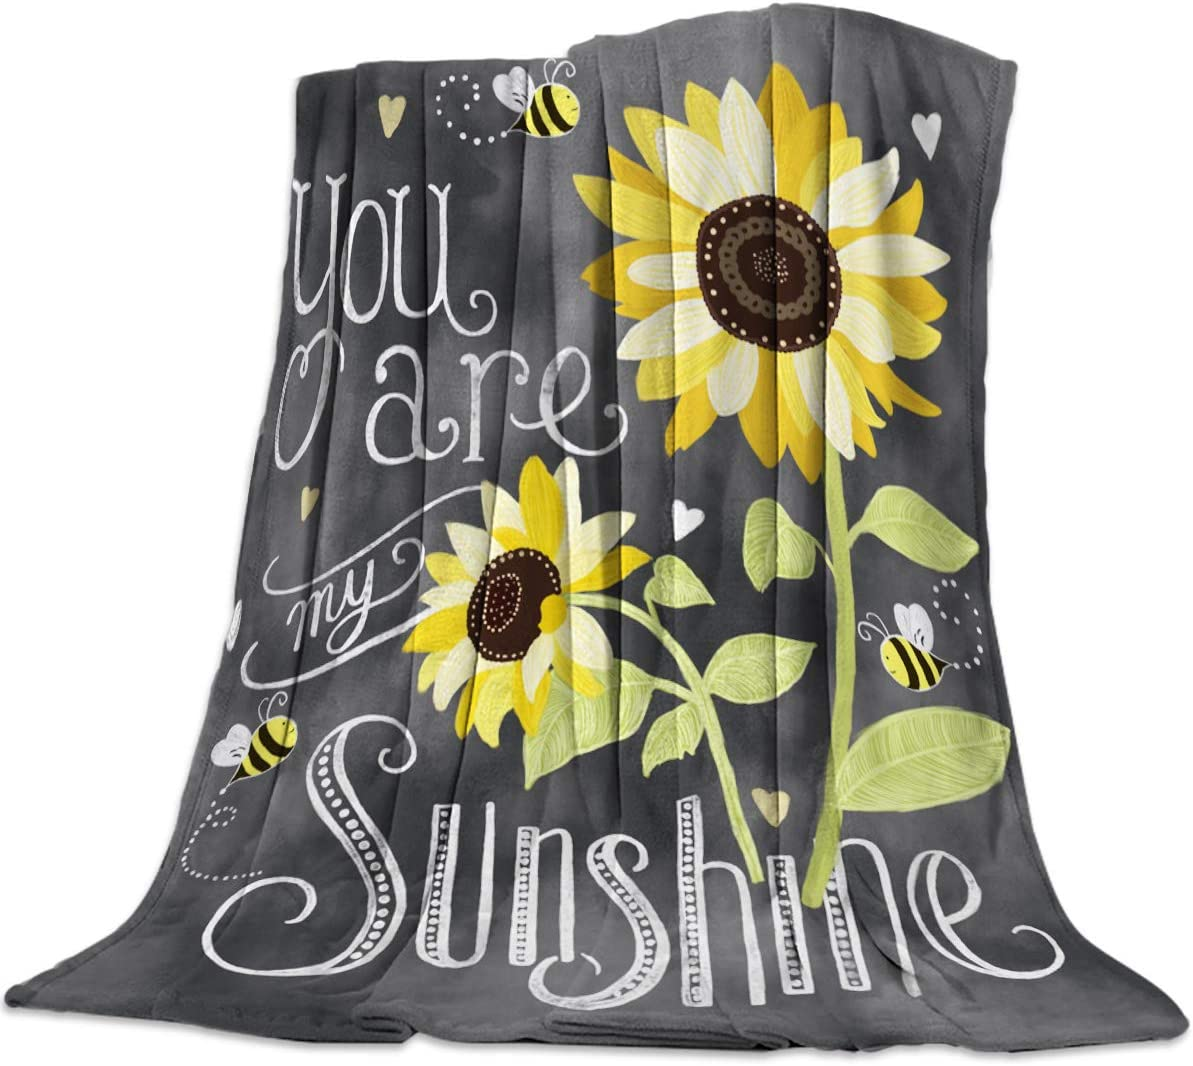 Cozy Flannel Blanket for Couch/Bed/Travel 50 x 80 Inches, You Are My Sunshine Special Font and Sunflower Art Design - Luxury Soft Warm Plush Microfiber Throw Blanket for Children/Parents Decor&Gift